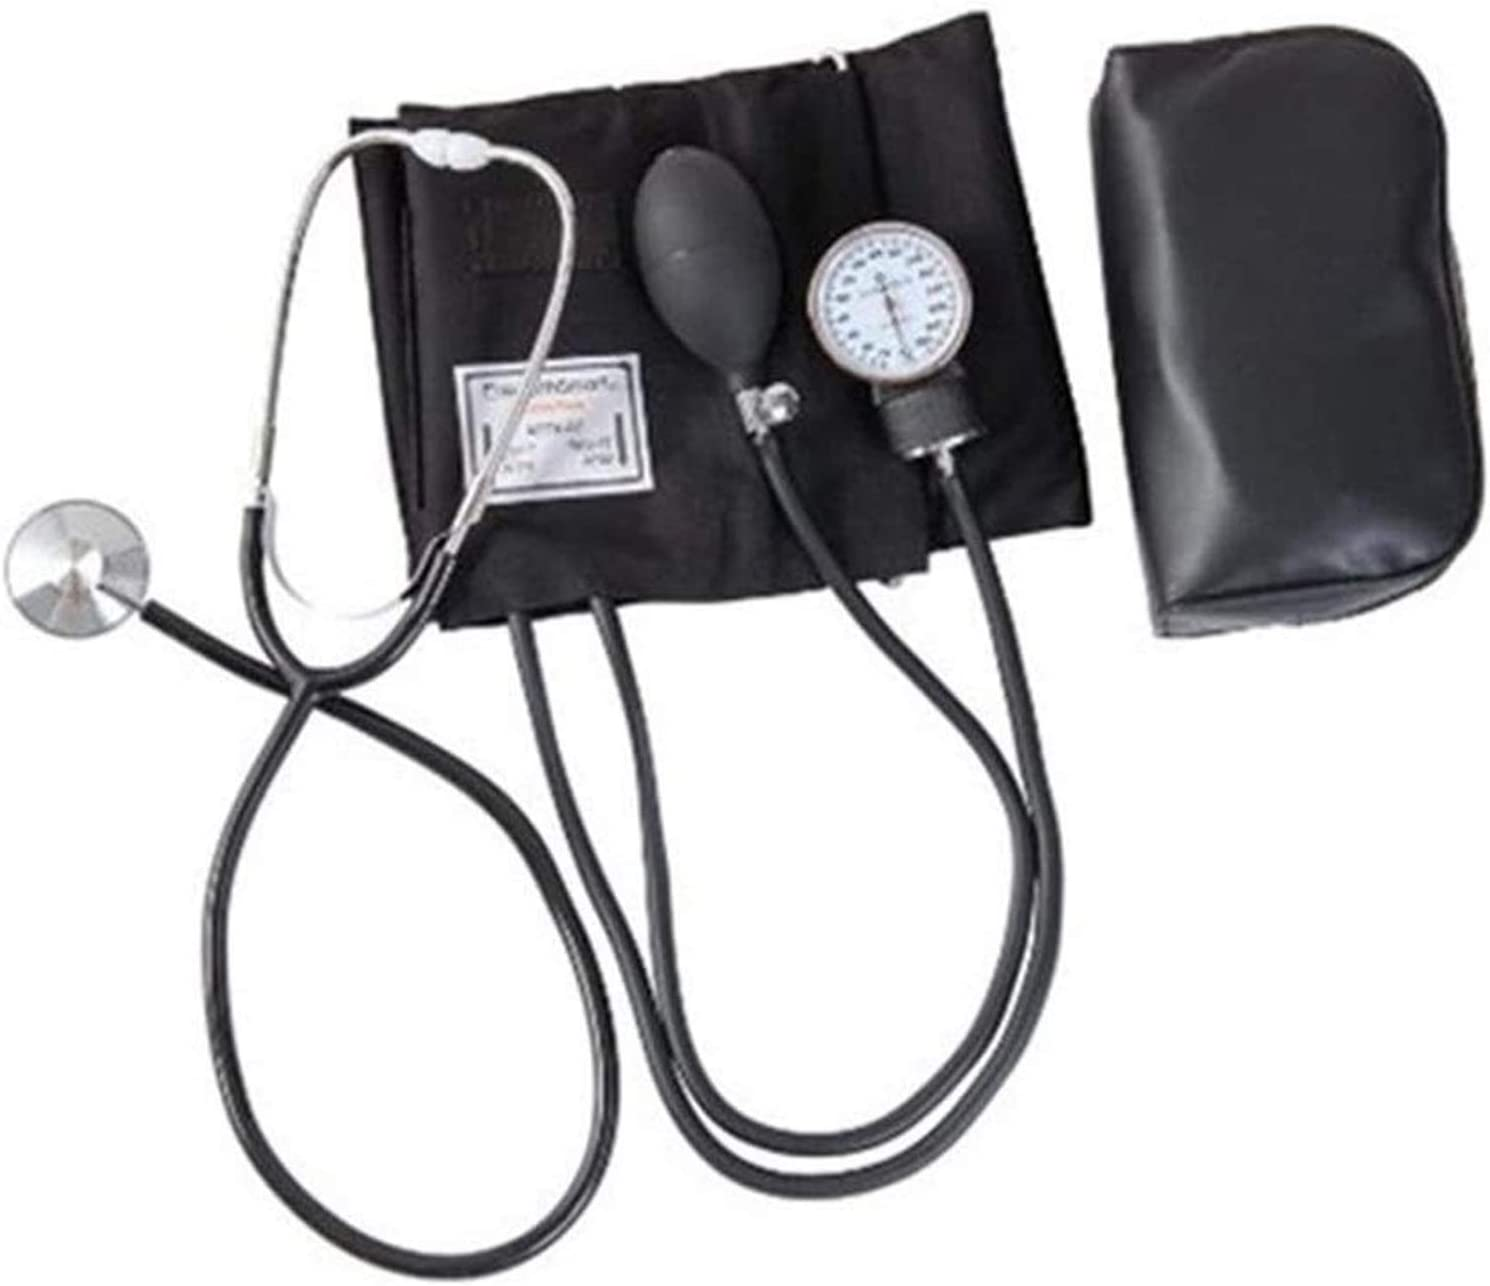 LXYYY Stethoscope Manual Blood Limited time Max 42% OFF cheap sale Pressure Meter Sphygm